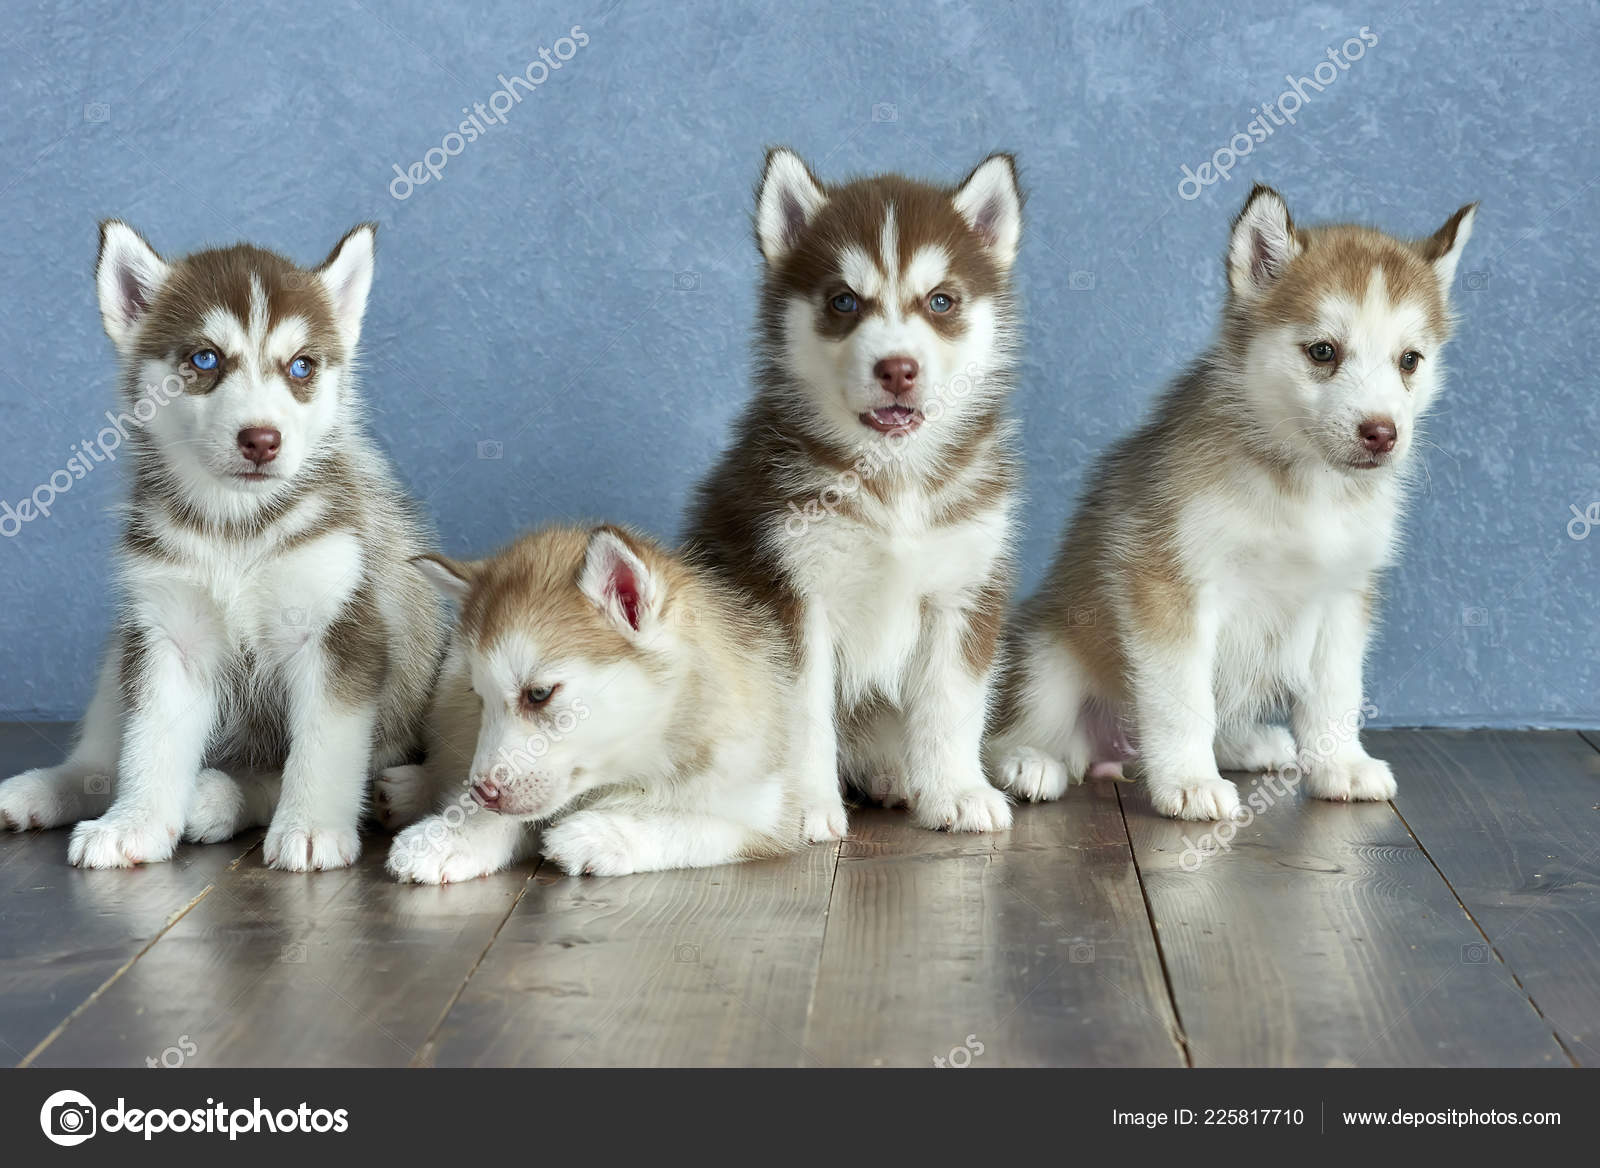 Four Blue Eyed Copper Light Red Husky Puppies Wooden Floor Stock Photo C Anniezhak 225817710